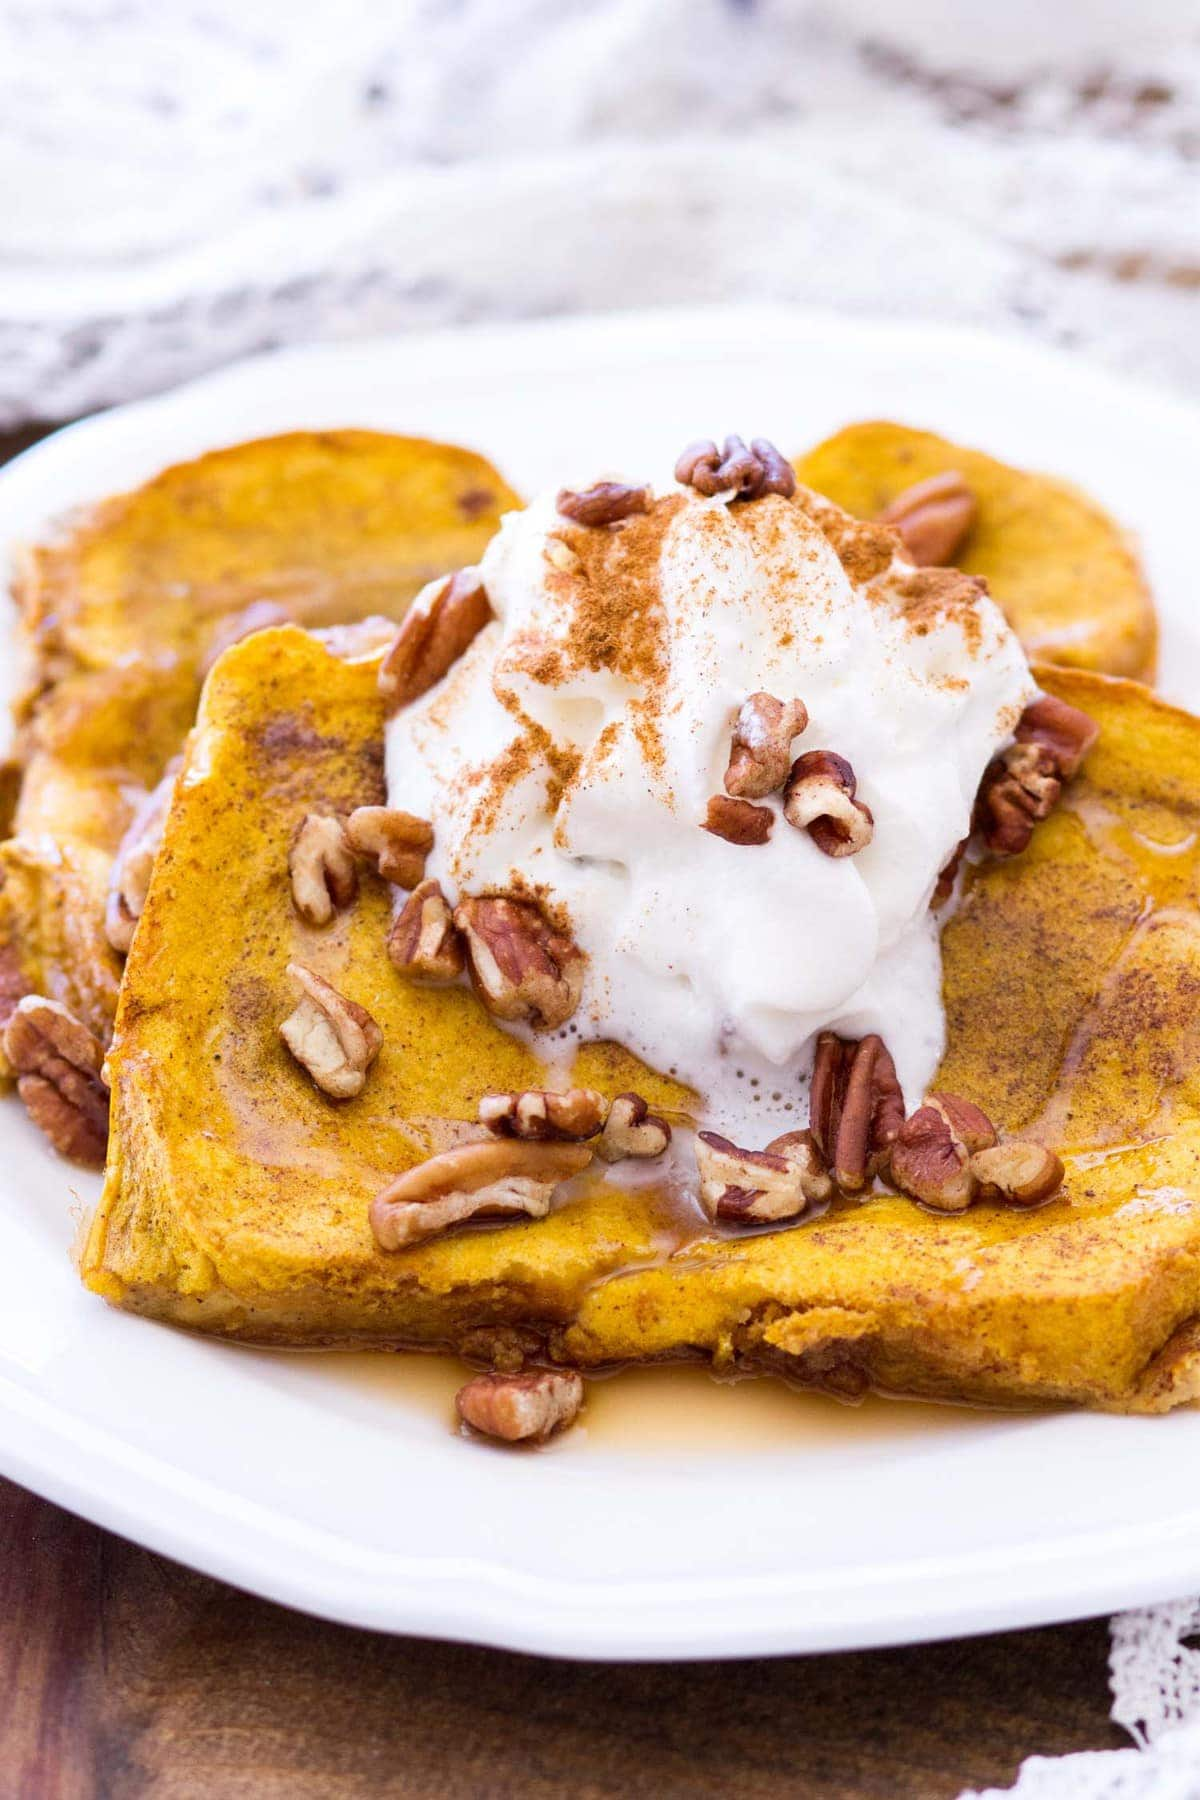 This easy pumpkin french toast recipe is baked in the oven, making this the perfect fall breakfast for any day of the week! Thick-cut bread is soaked in a rich pumpkin custard and baked to perfection!